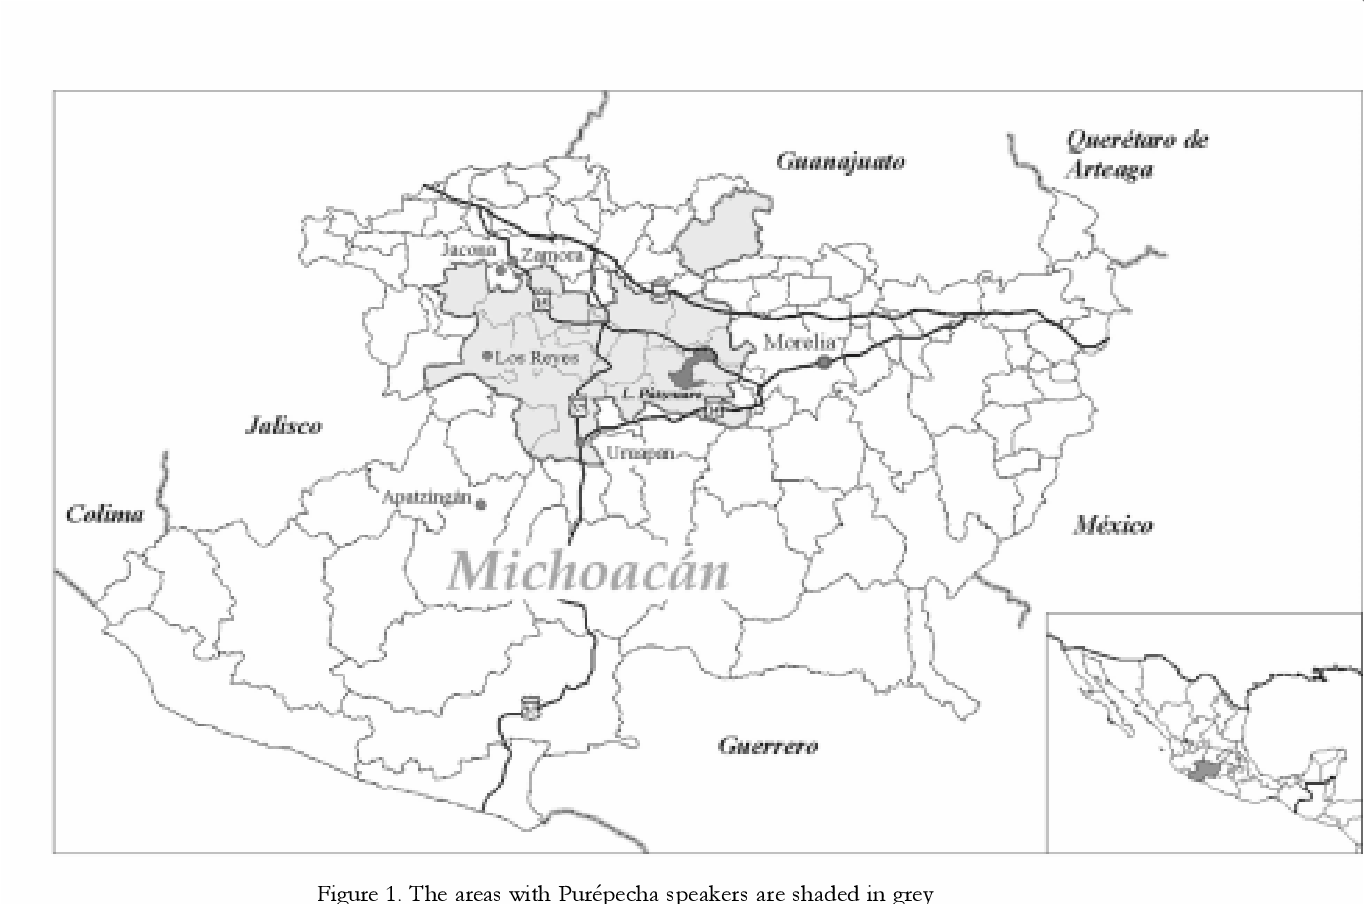 Demographic Changes in the Purepecha Region of Michoacan